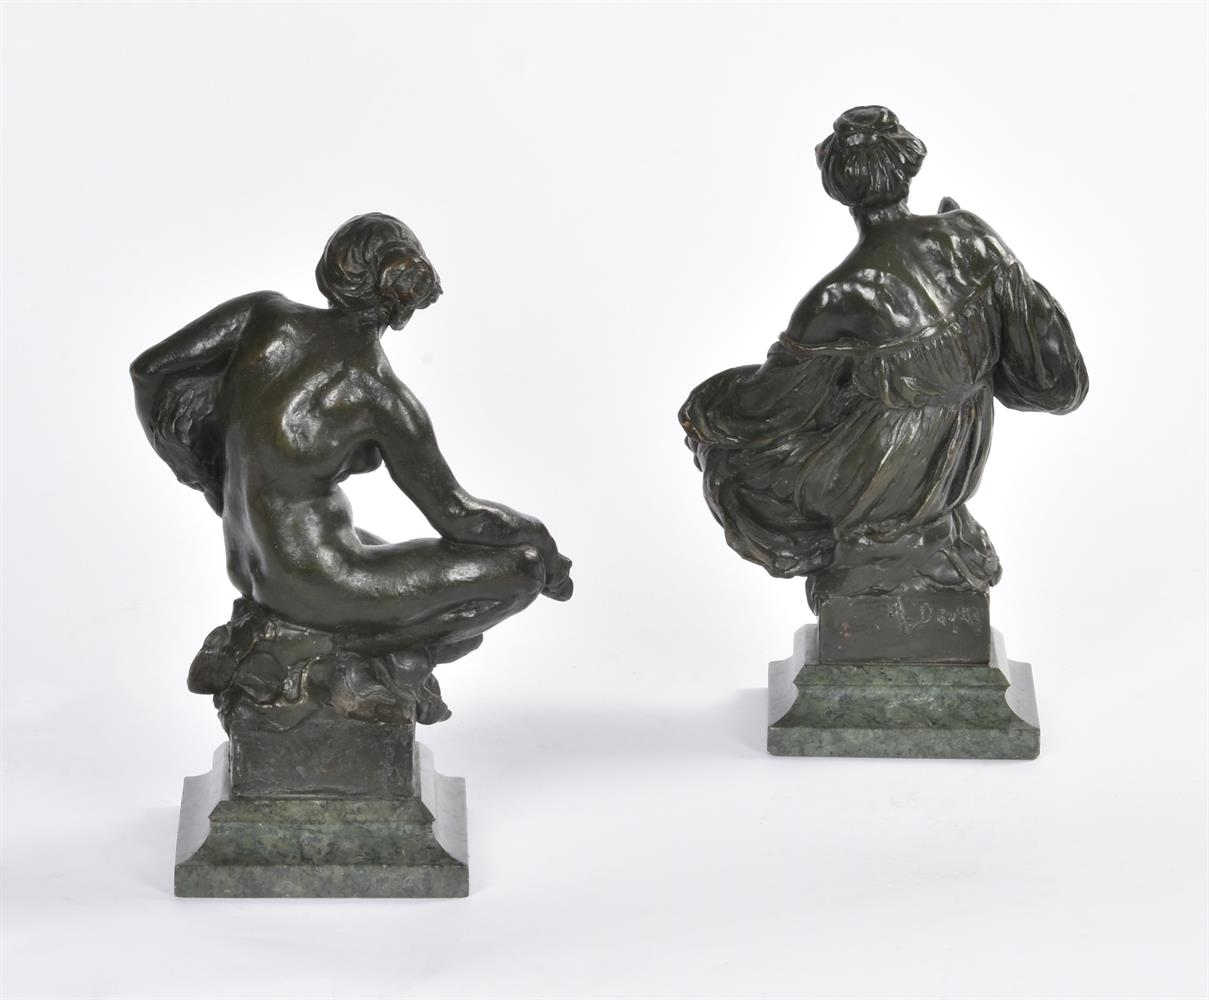 ALFRED DRURY (1856-1944), A PAIR OF BRONZE FEMALE FIGURES OF DRAMA AND LITERATURE - Image 4 of 6